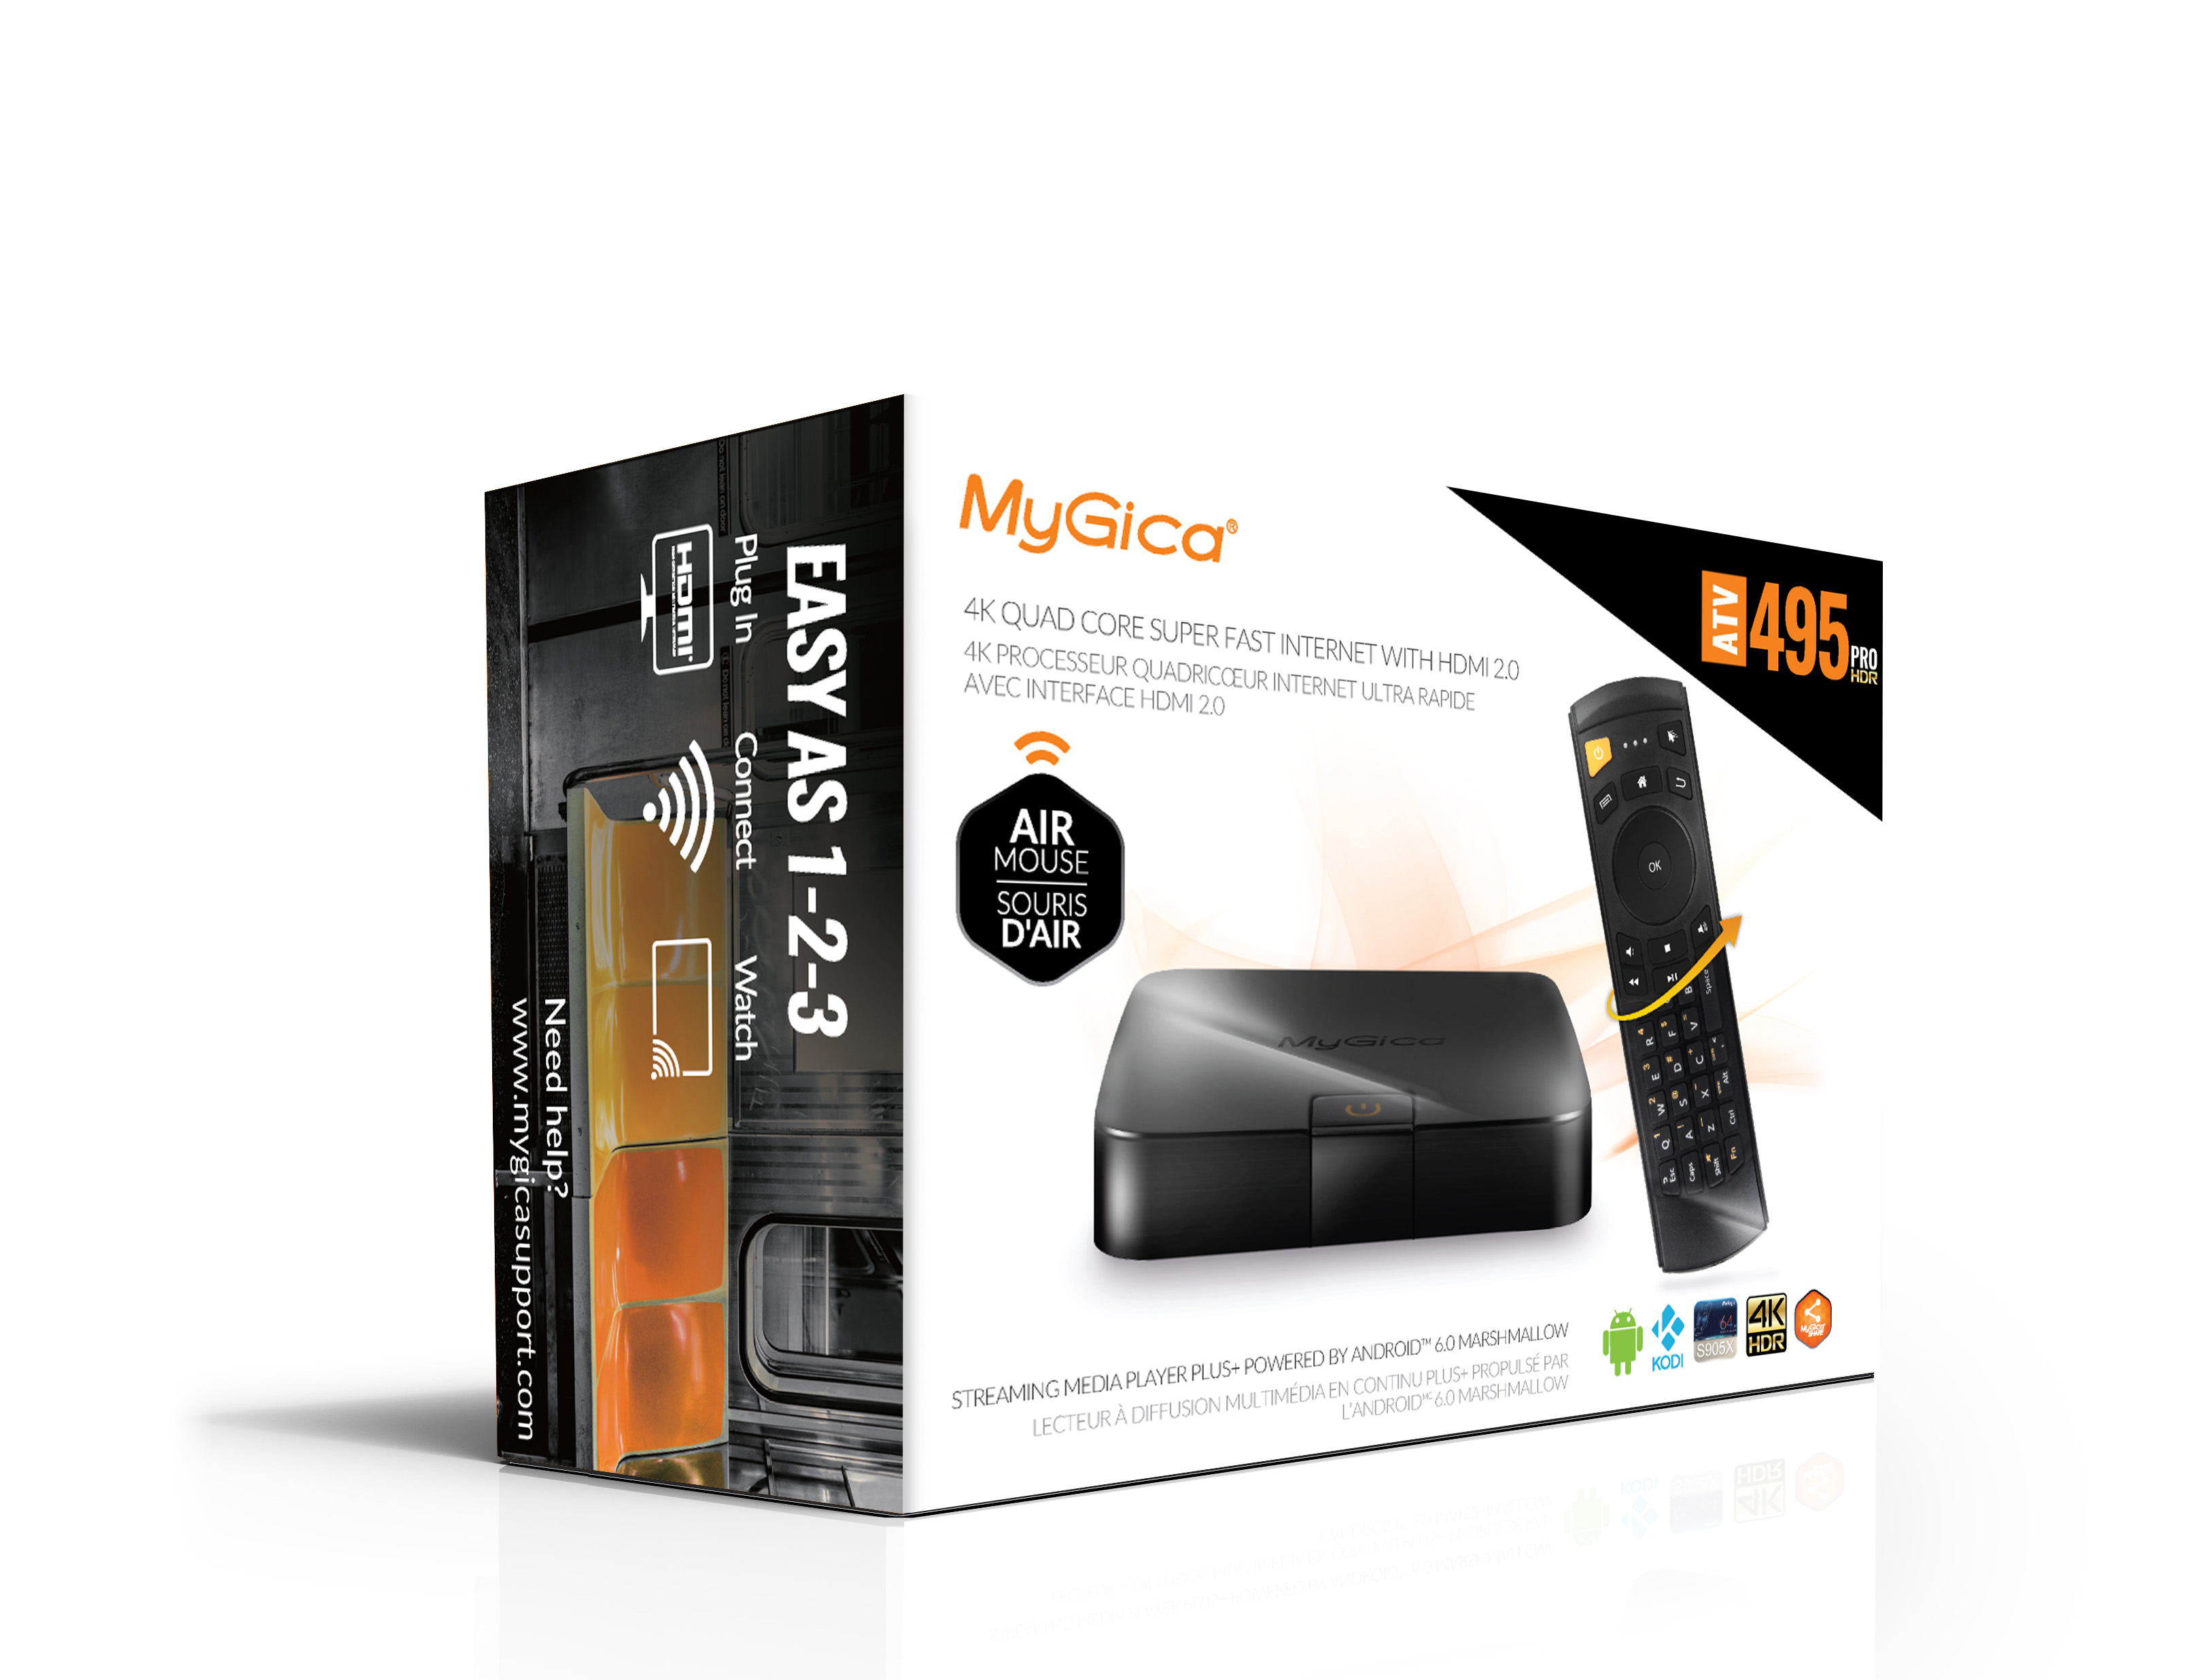 MyGica ATV495 PRO HDR Quad Android Ultra 4K HDMI 2.0 HDTV Box